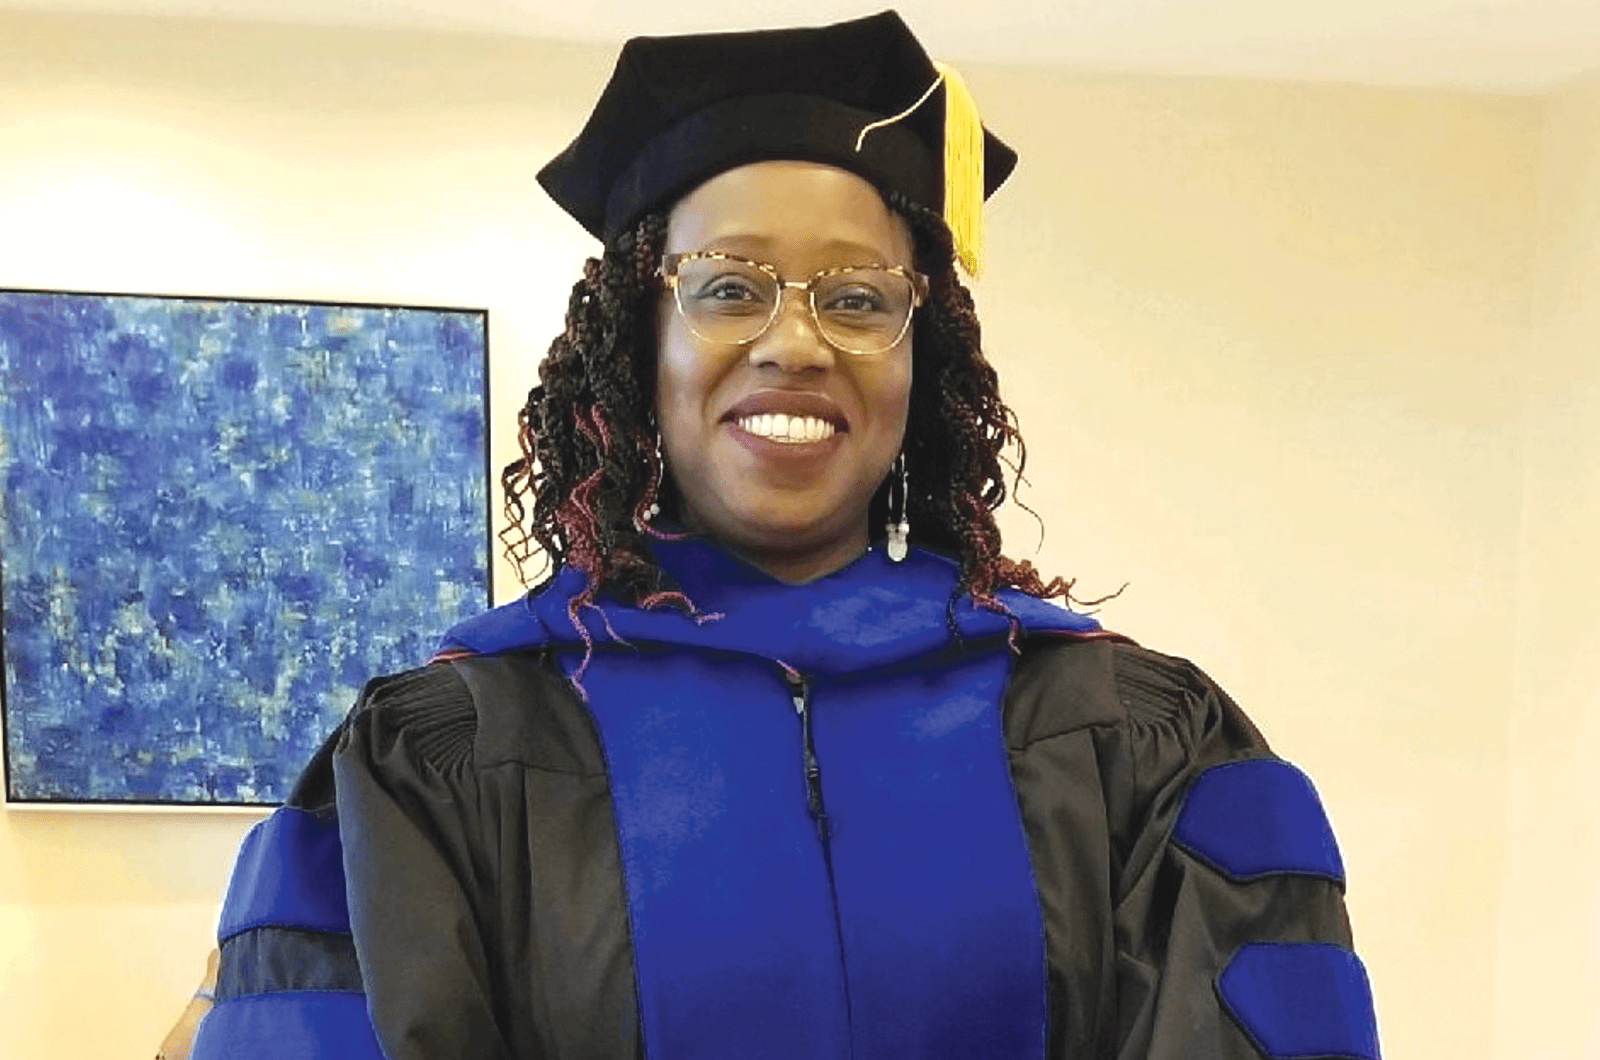 Woman in blue graduation cap and gown